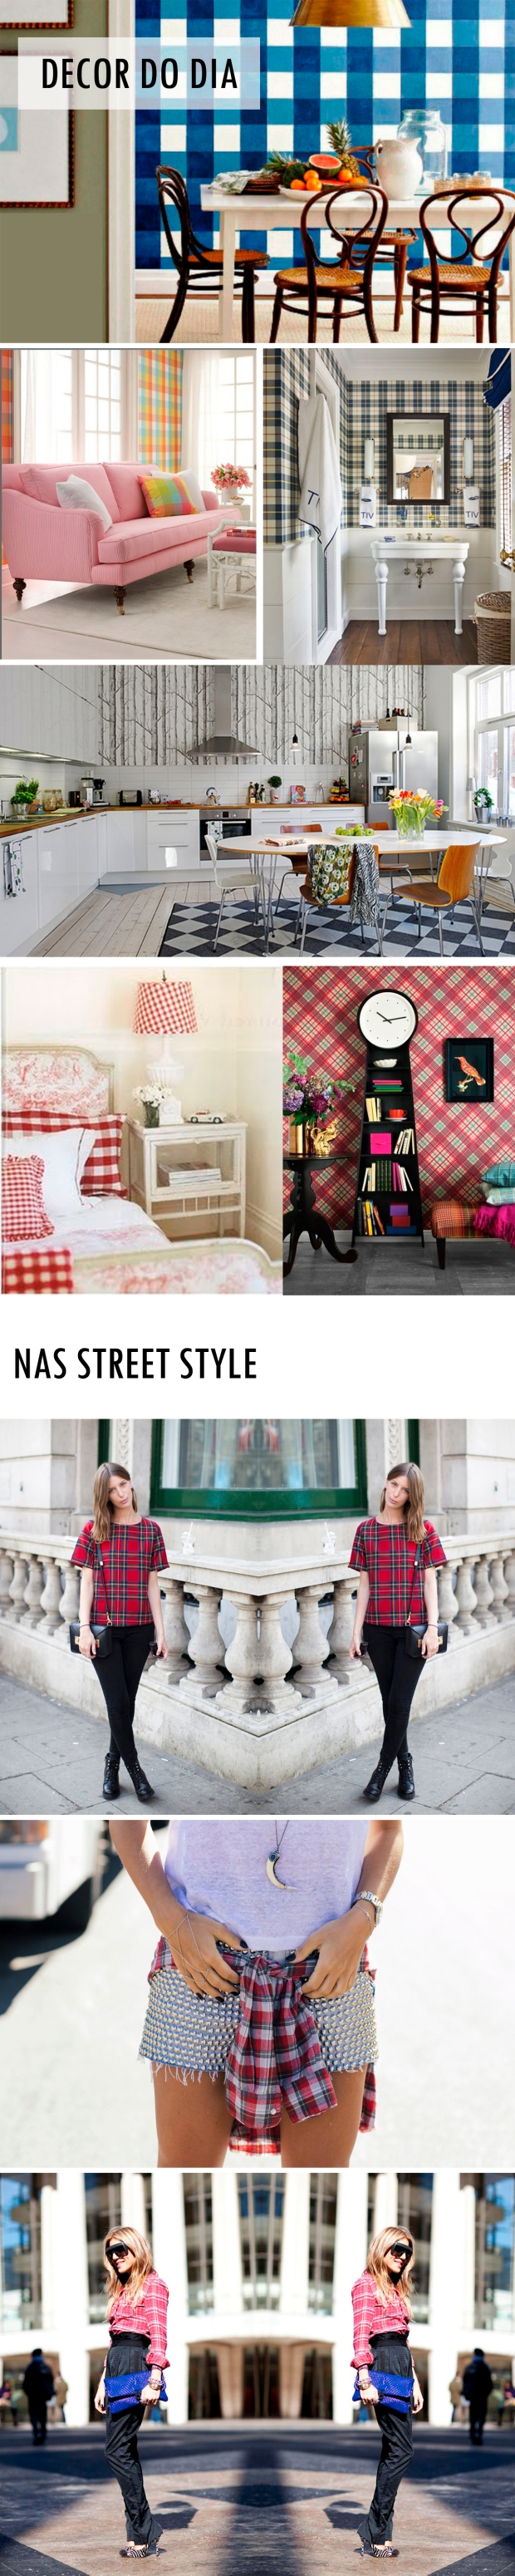 decor-do-dia-analoren-blog-ecommerce